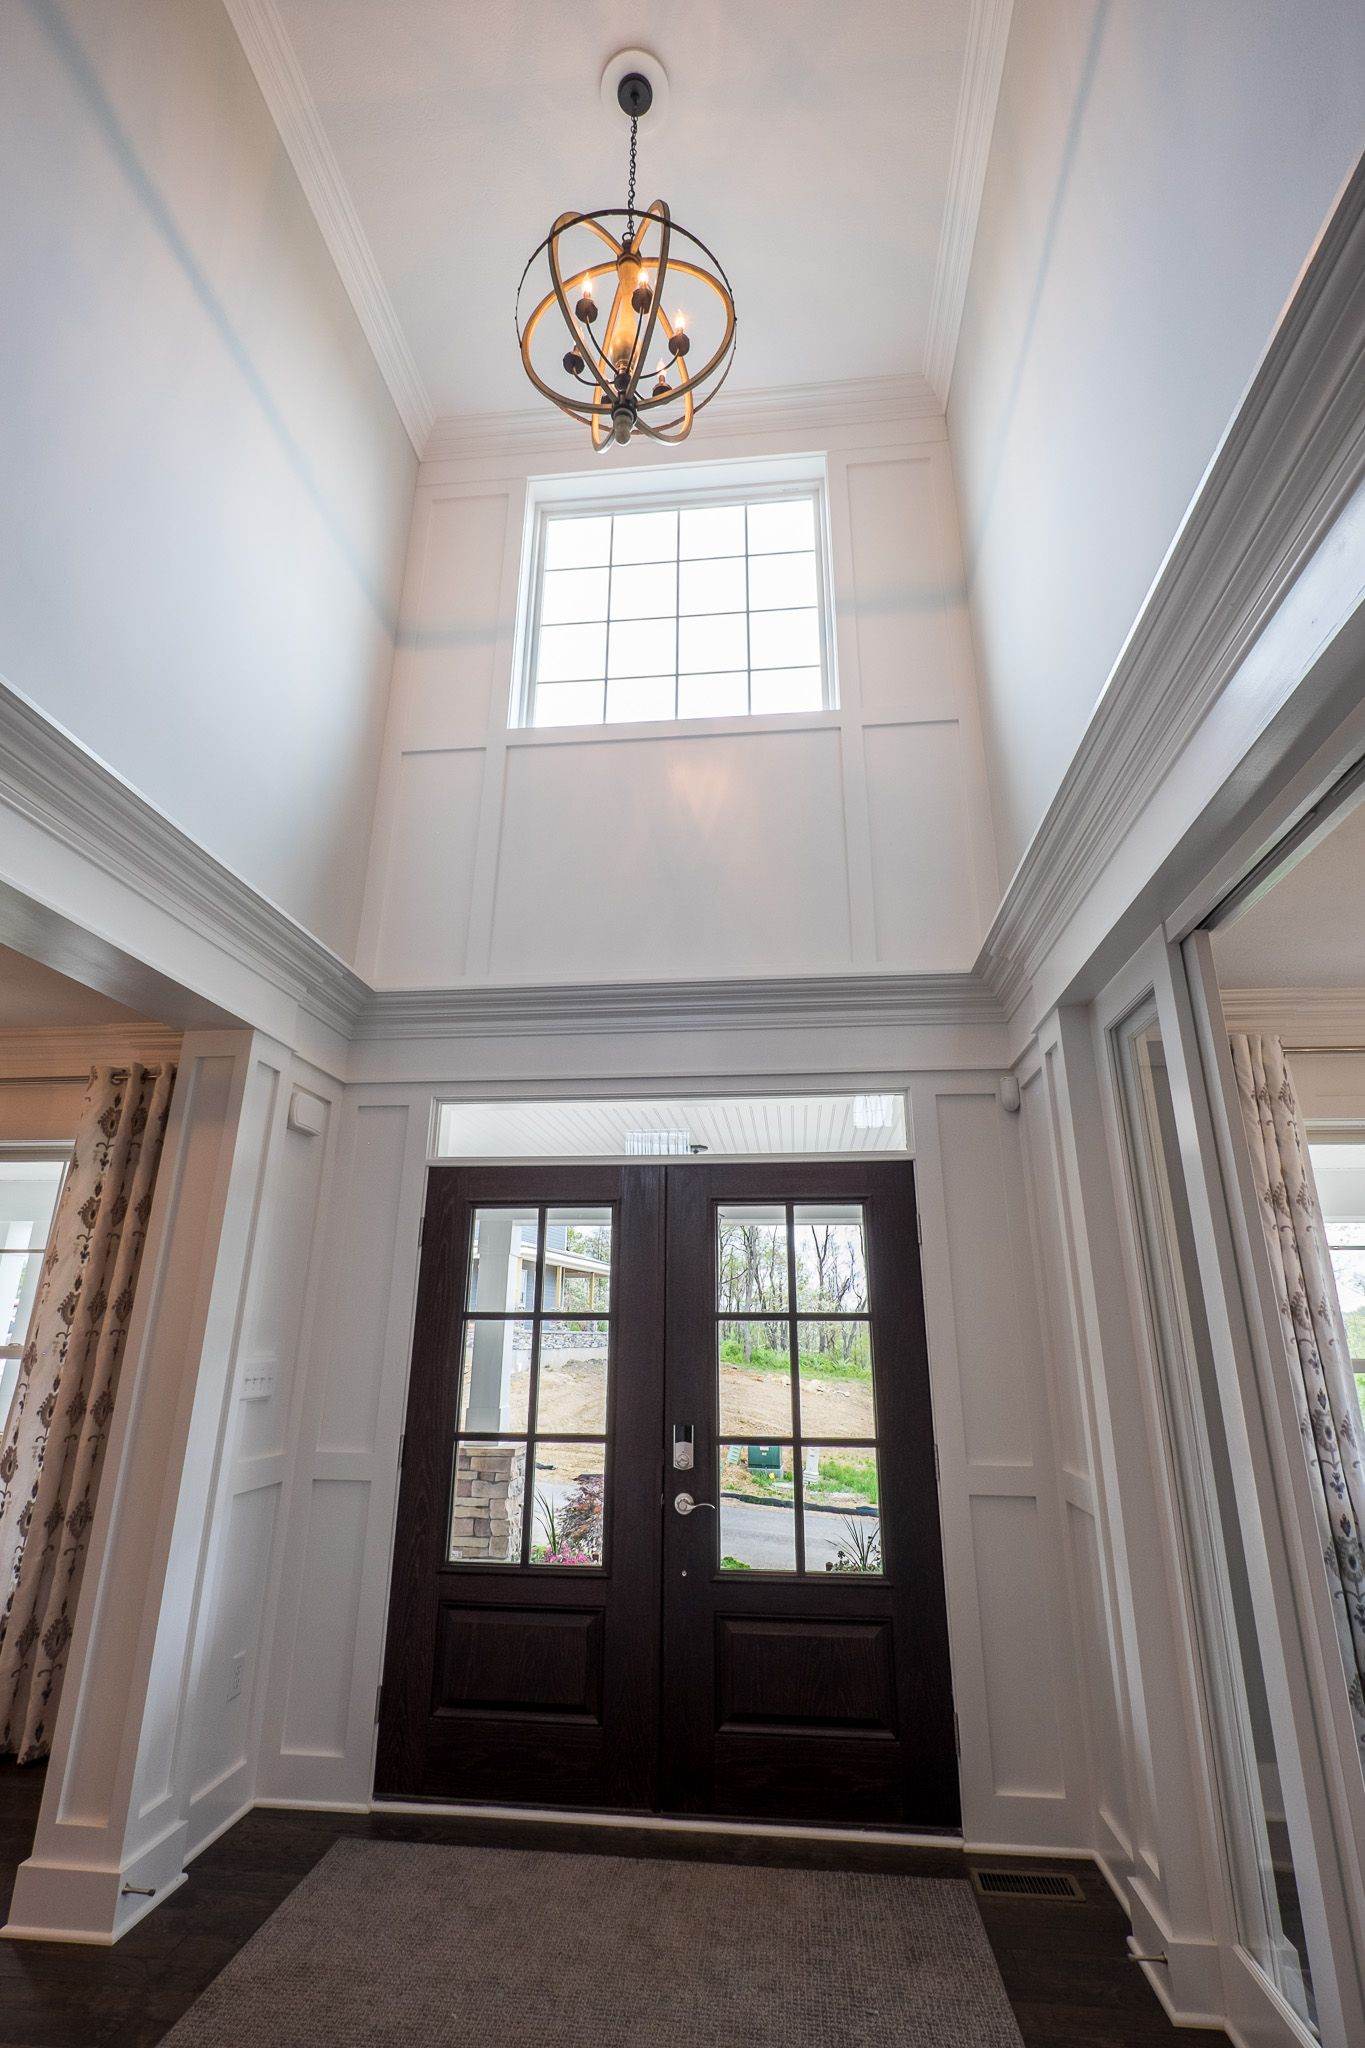 Window For Foyer : Window and a orbital light fixture brighten the story